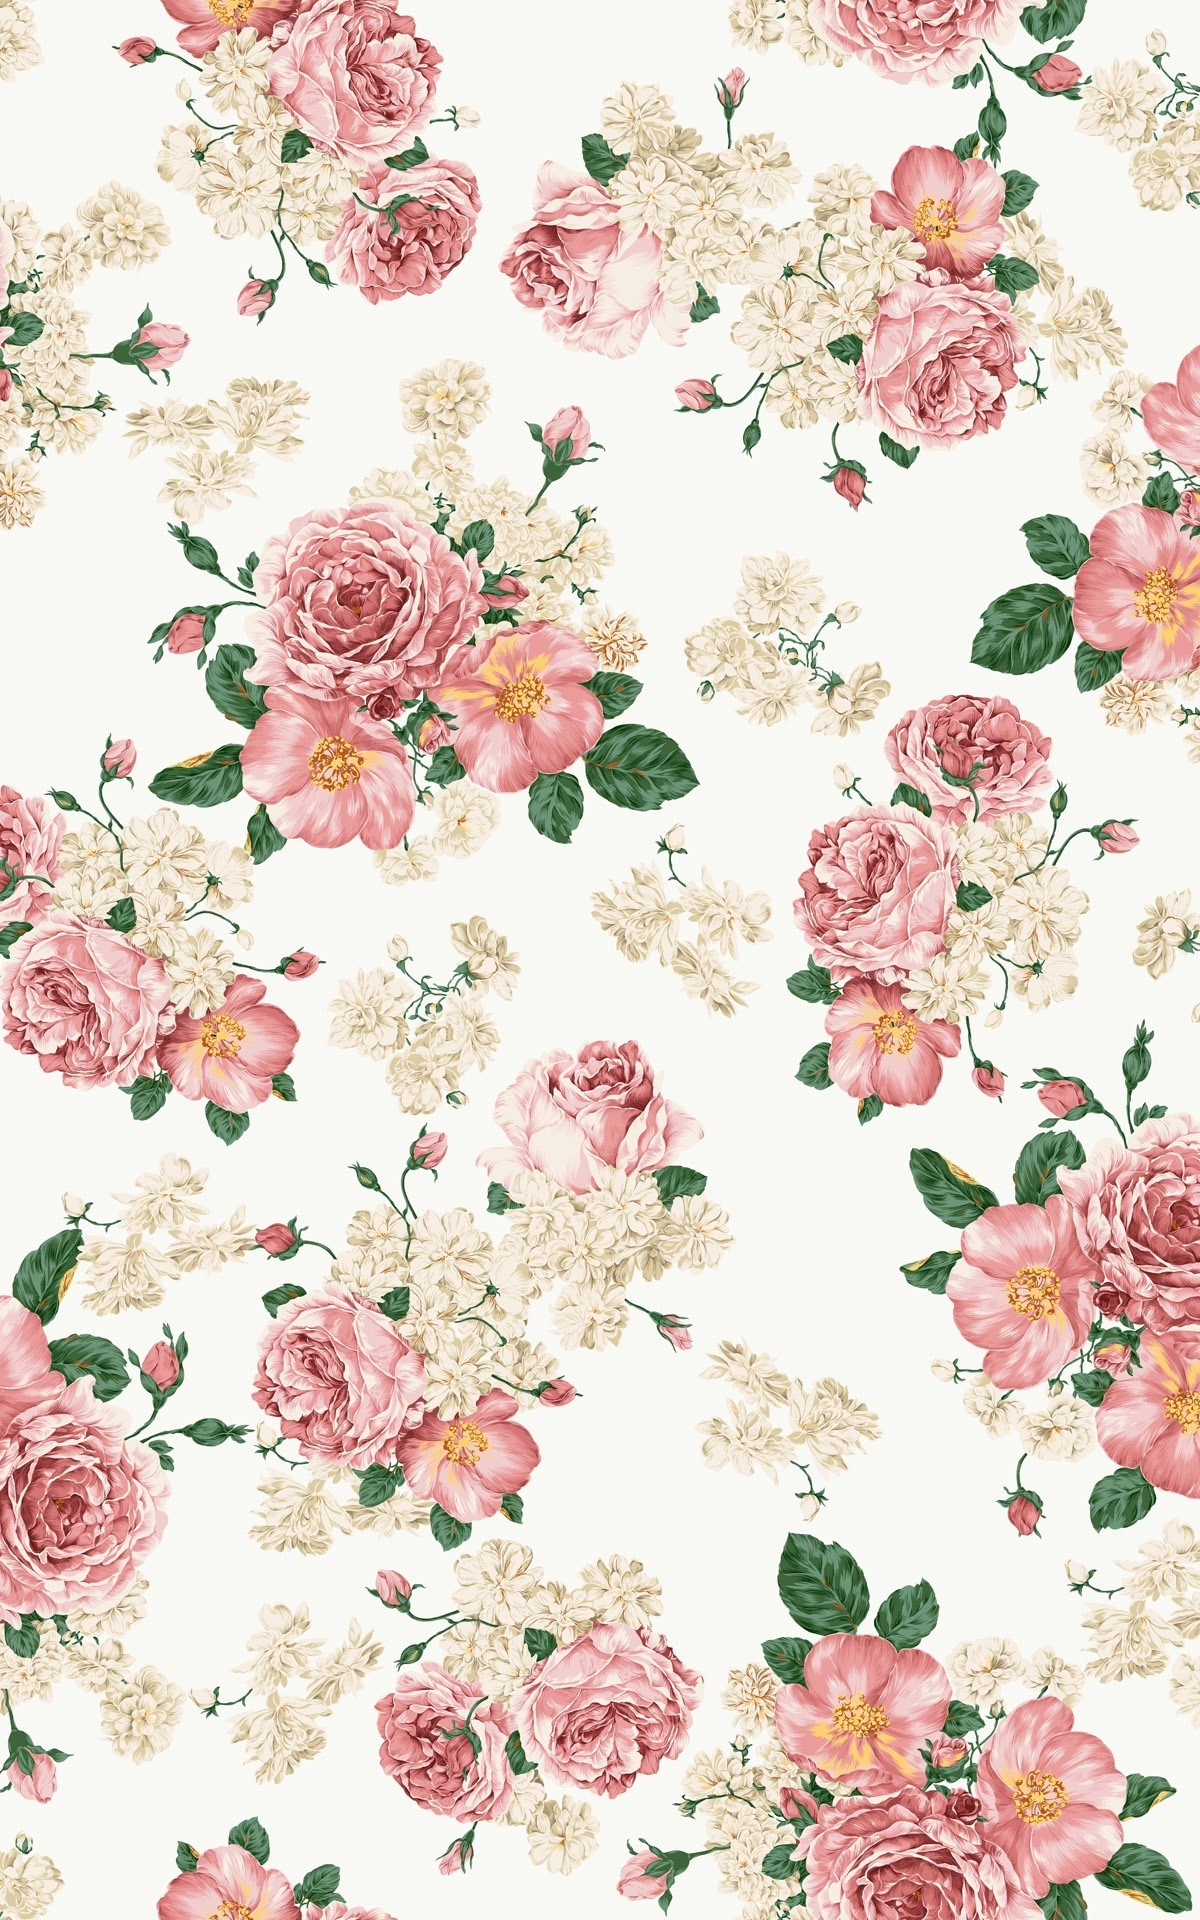 Floral Background Tumblr 1 Download Free HD Backgrounds For